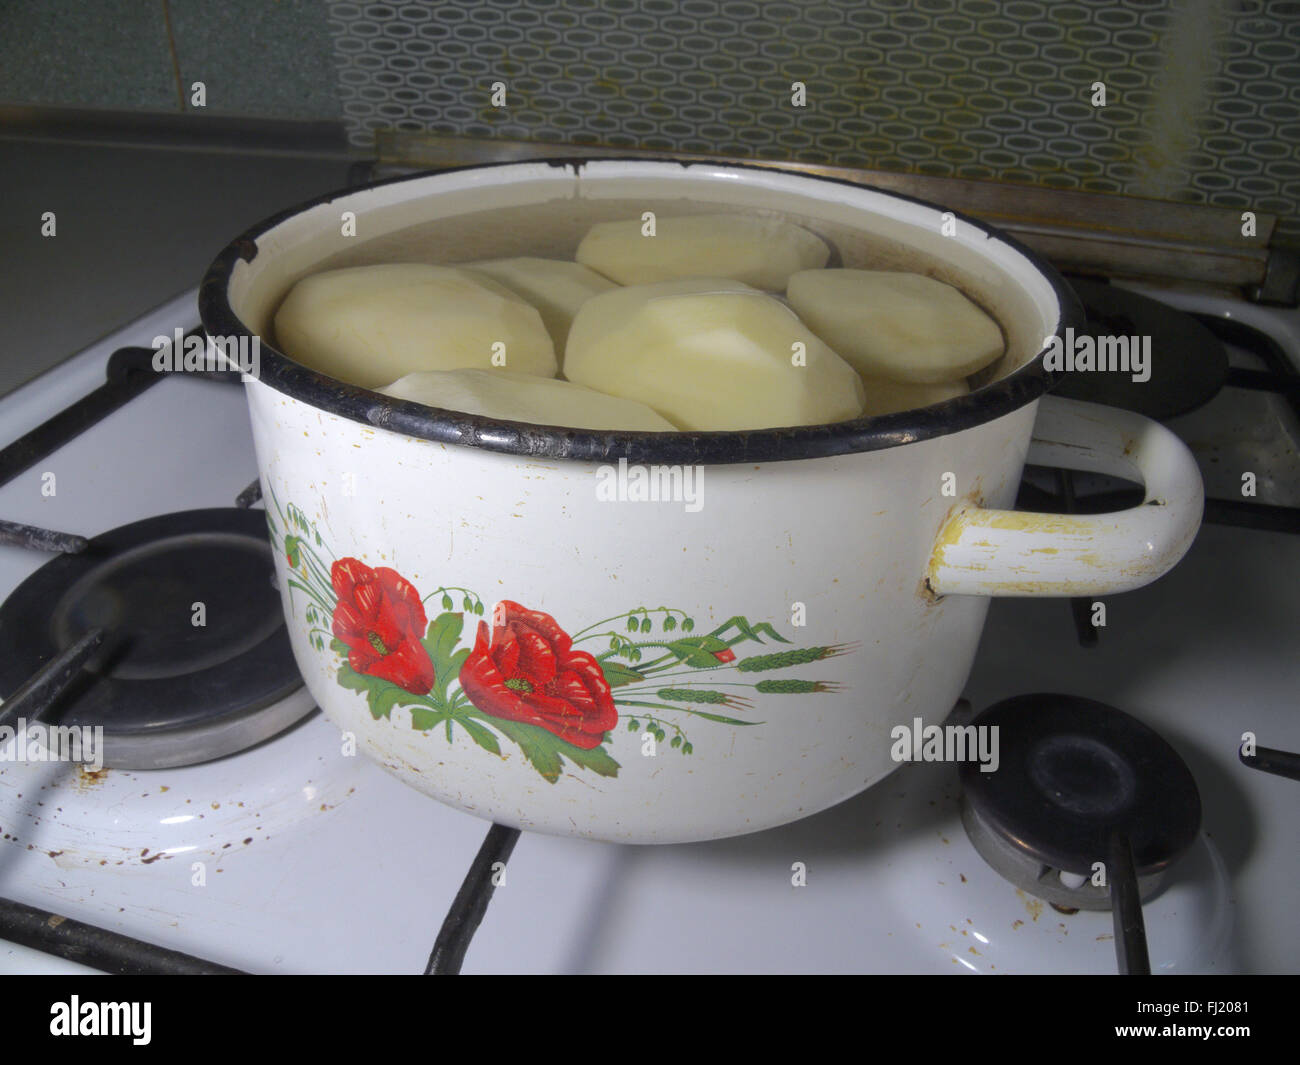 white pan with picture of vegetables, full of water and potatoes - Stock Image